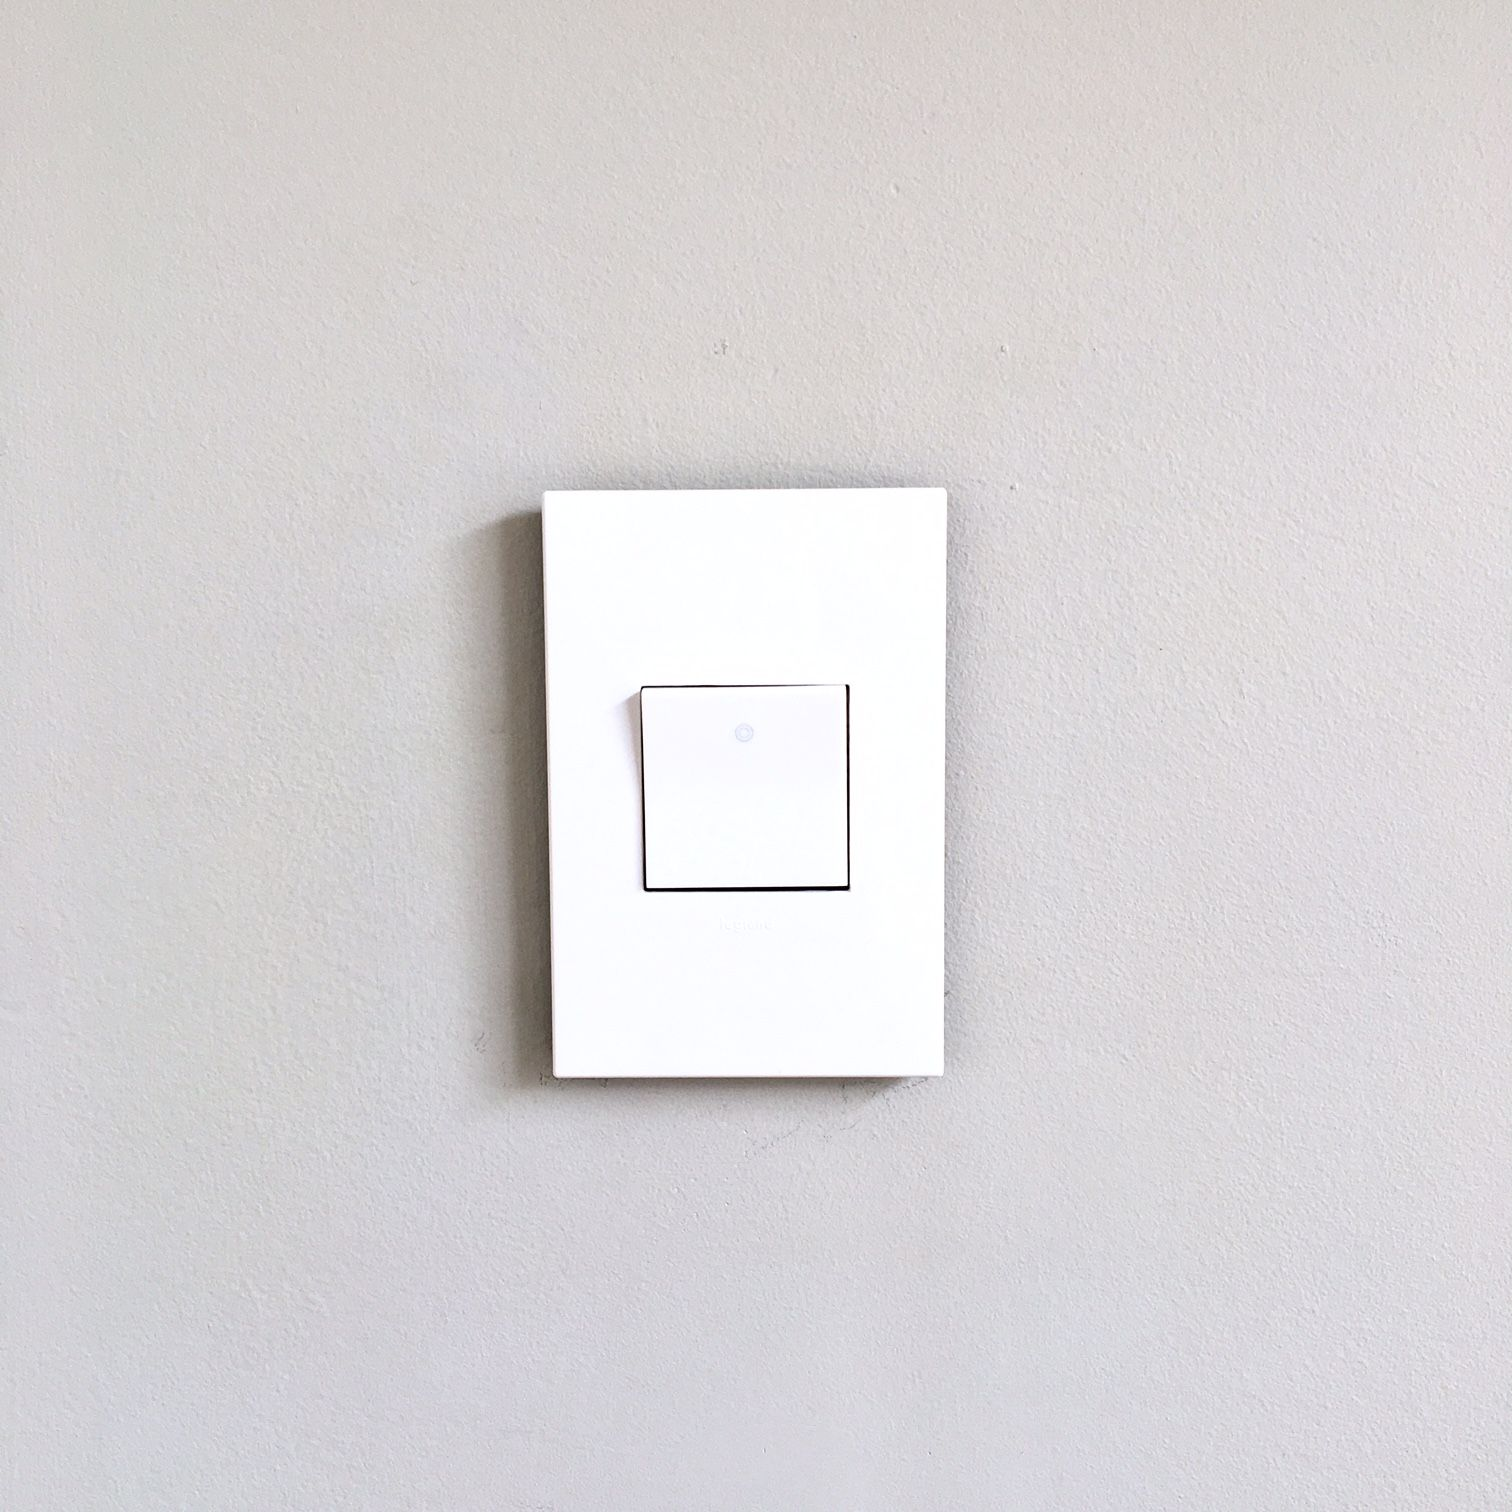 Harlow Thistle Home Design Lifestyle Diy Modern Light Switches And Plate Covers Modern Light Switches Light Switch Plate Cover Light Plate Covers